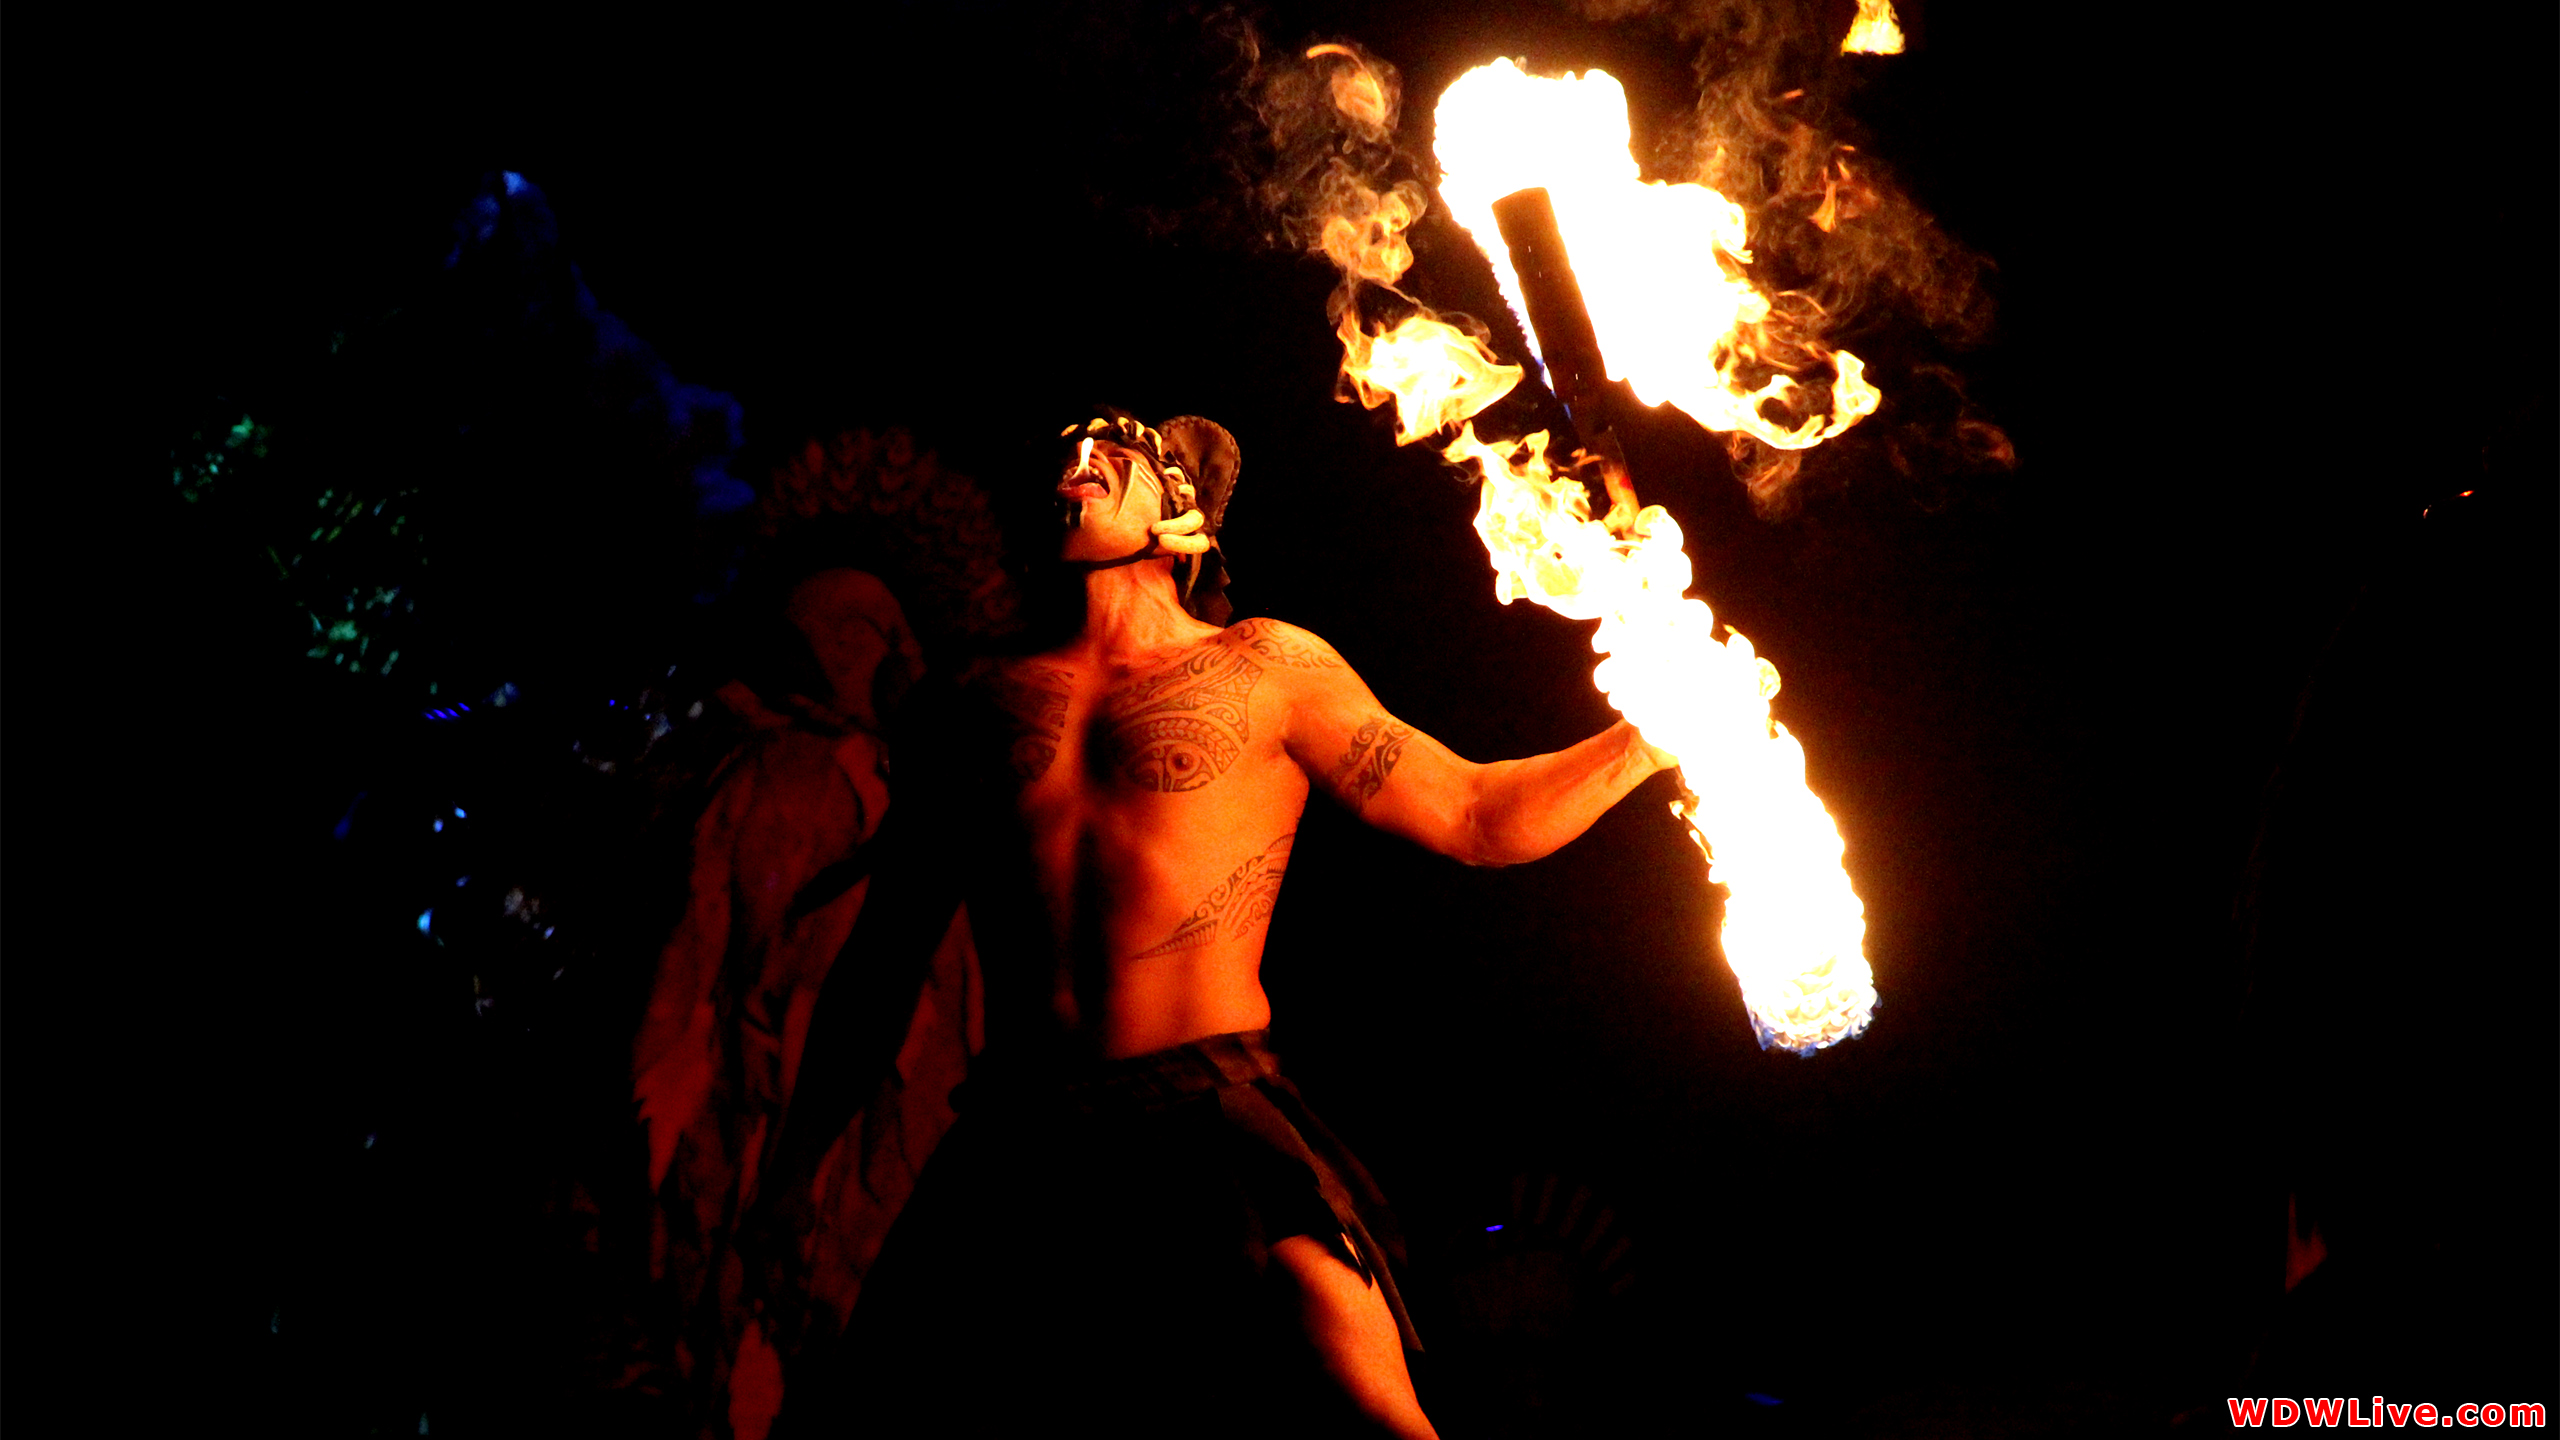 Amazing Fire Juggling Pictures & Backgrounds